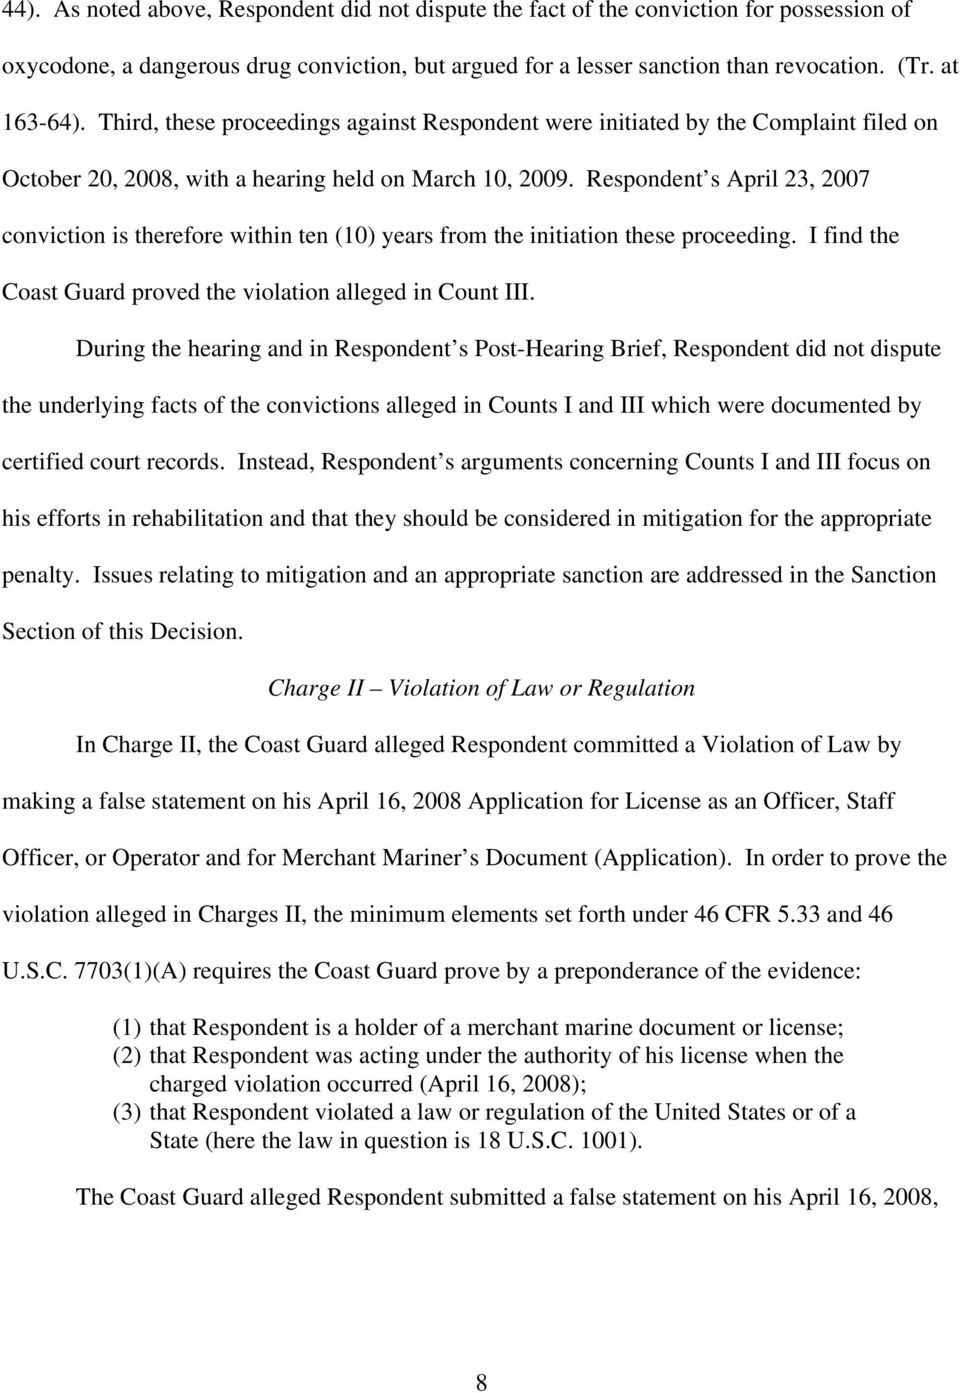 Respondent s April 23, 2007 conviction is therefore within ten (10) years from the initiation these proceeding. I find the Coast Guard proved the violation alleged in Count III.